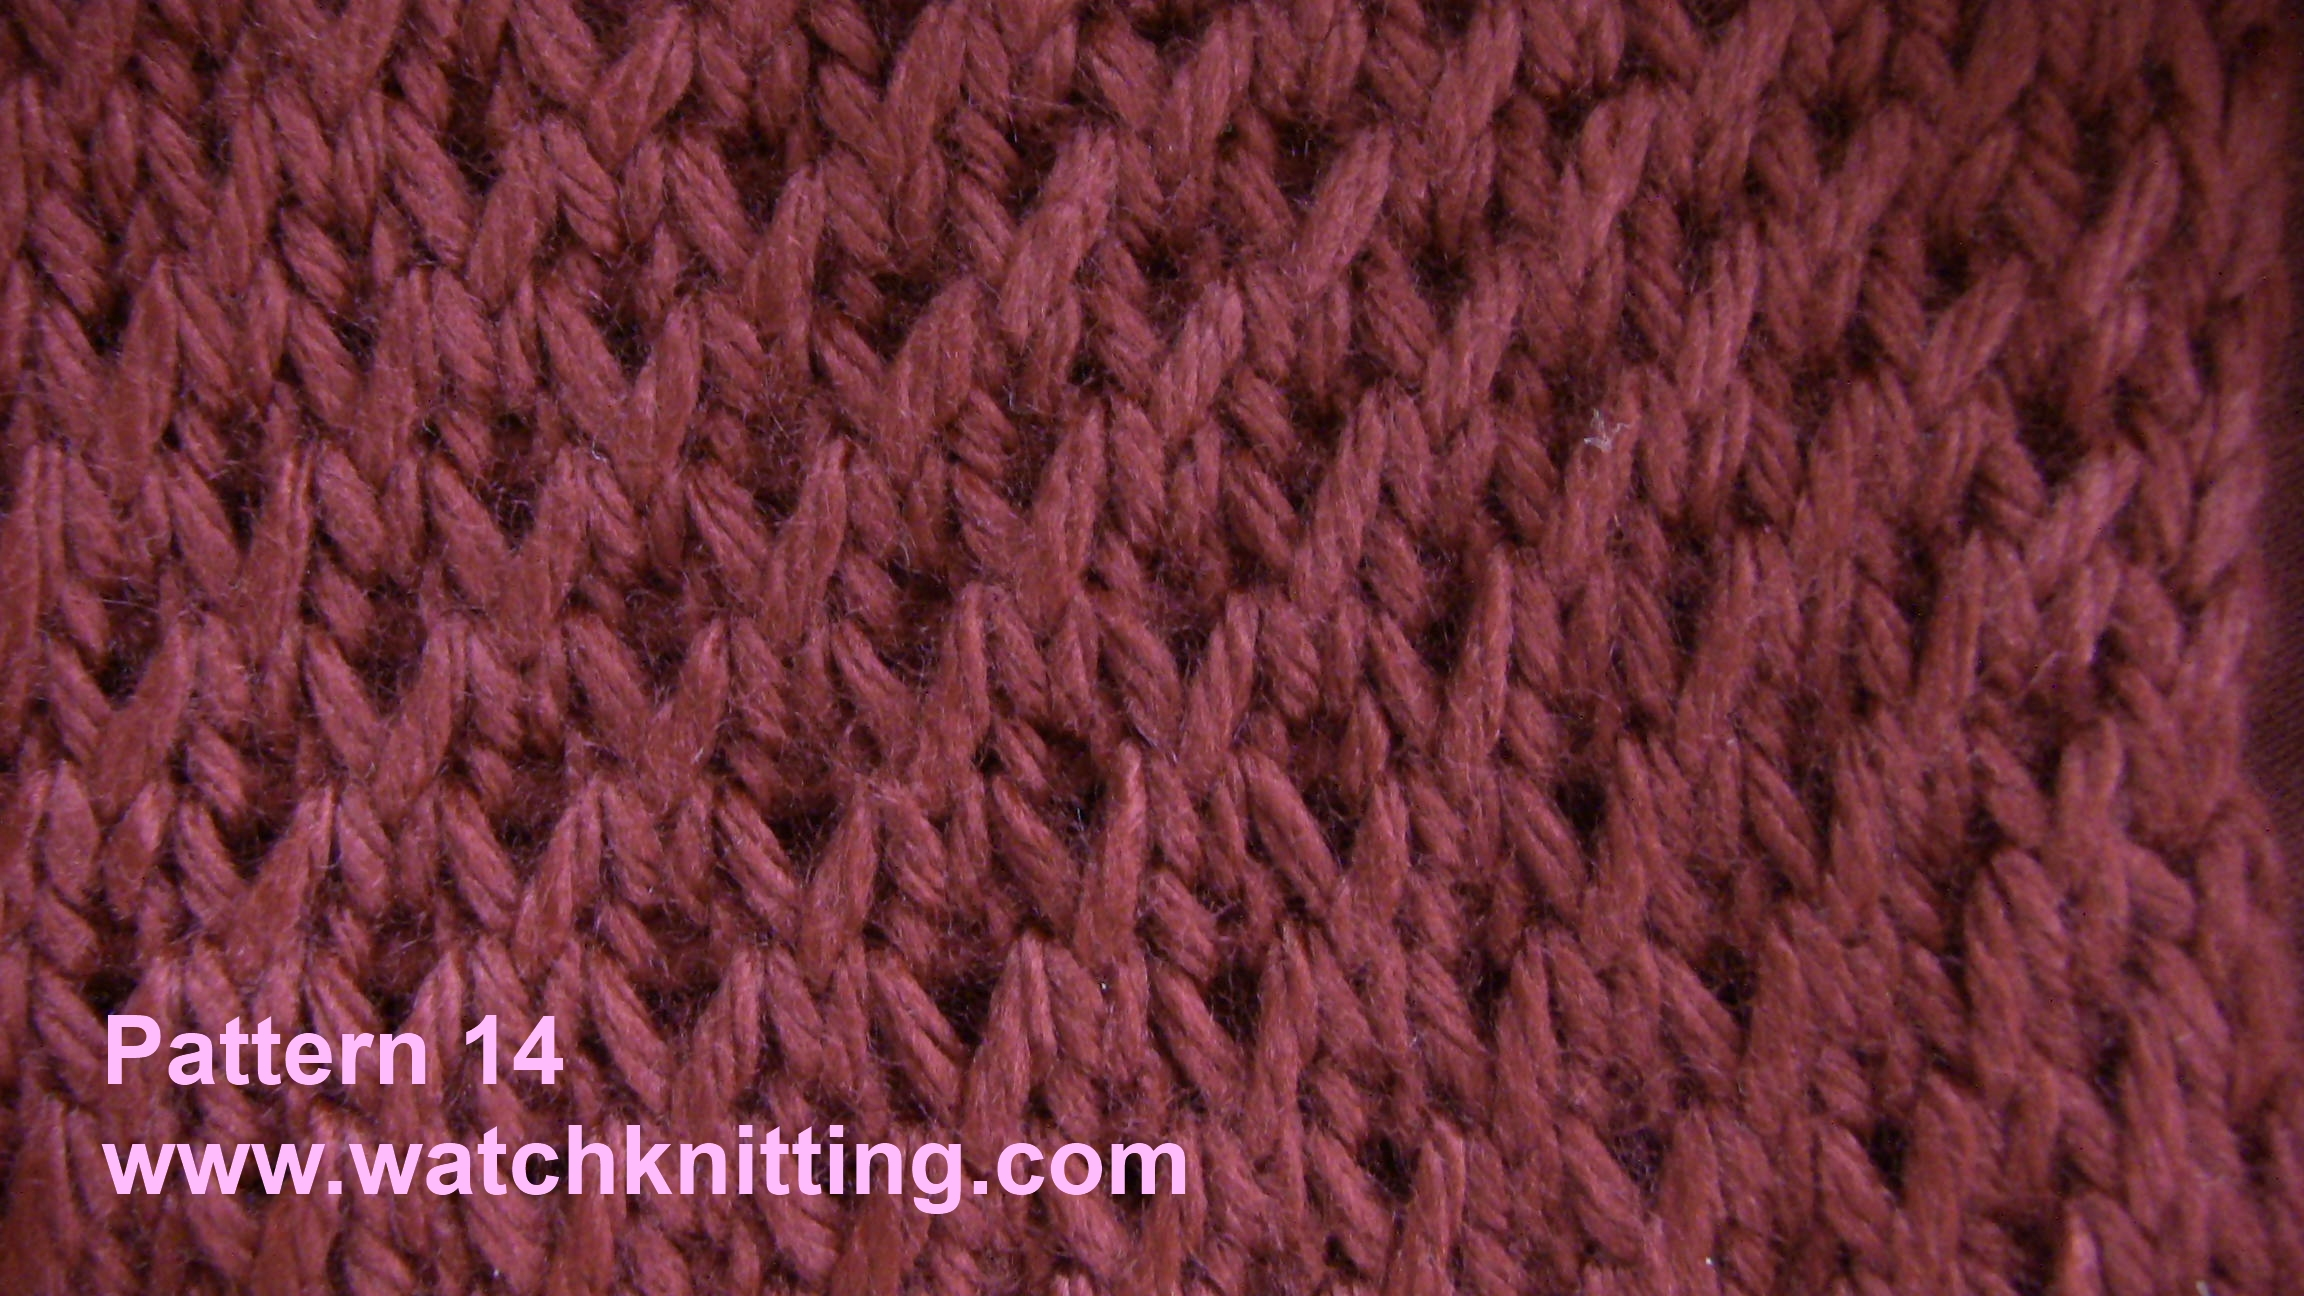 Knitting Stitches Patterns Easy : Posts by Fariba Zahed Watch knitting - Page 2